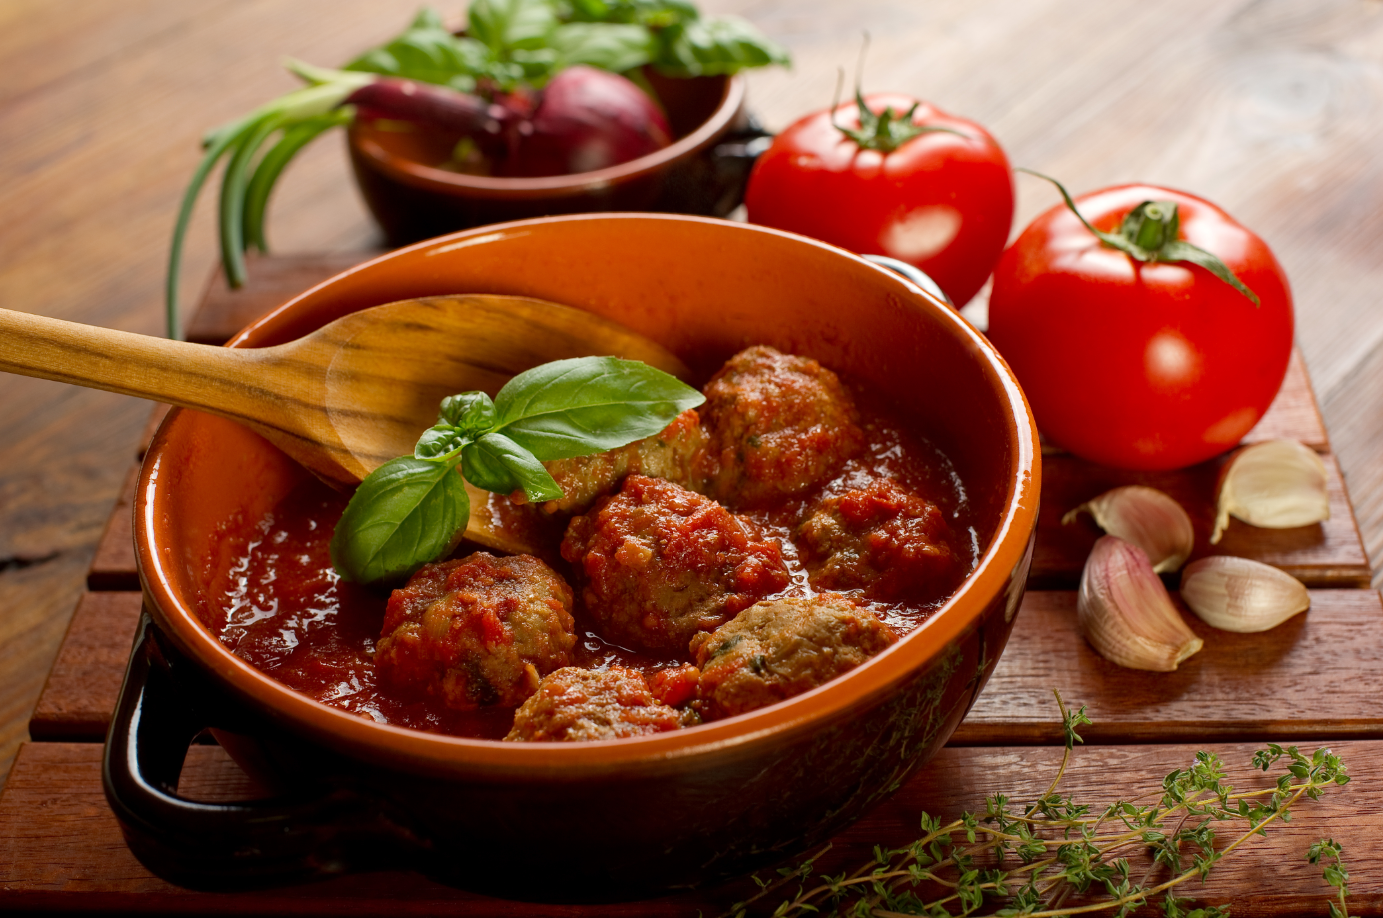 a bowl of meatballs in red sauce with a wooden spoon